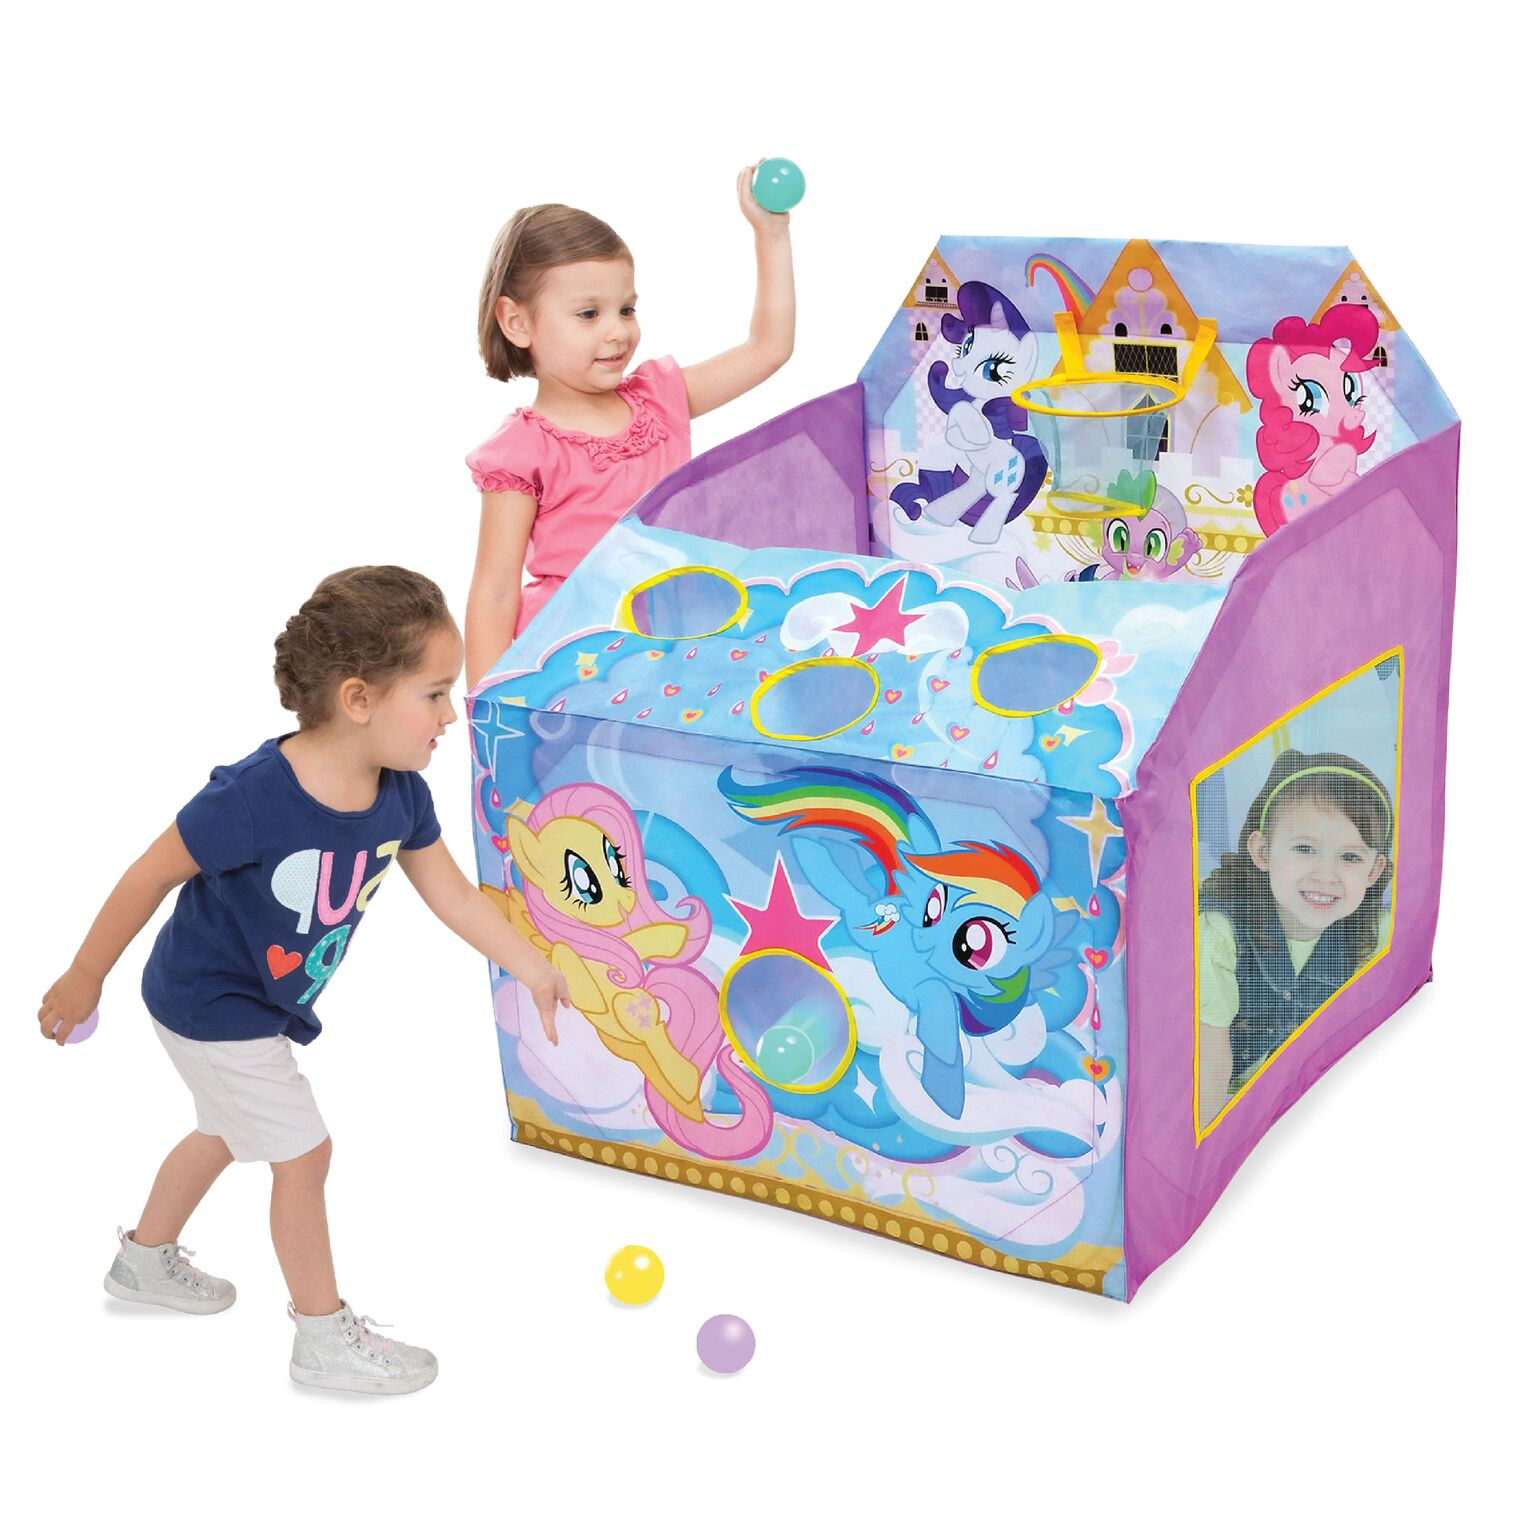 Playhut My Little Pony 3 in 1 Play Center